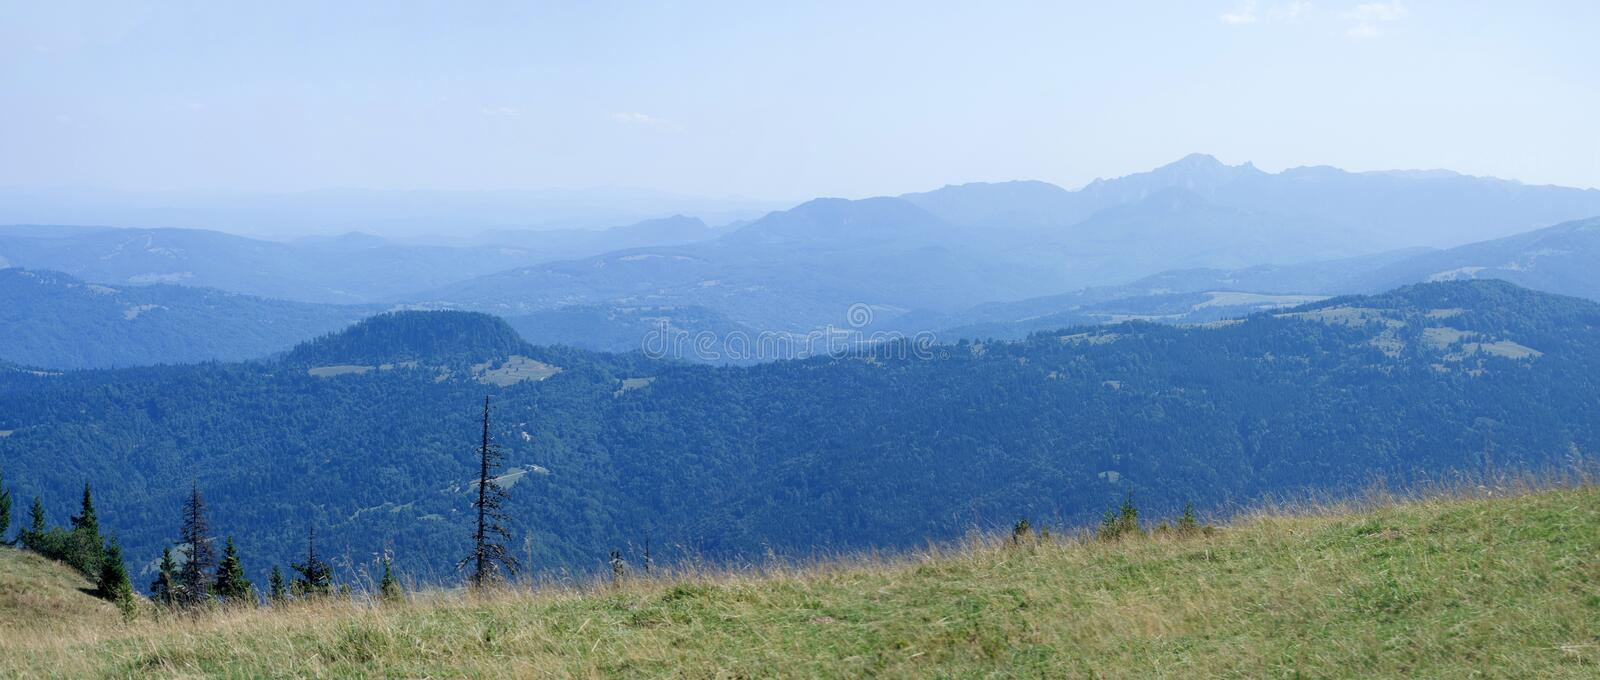 Transylvania mountains - panoramic view royalty free stock photography